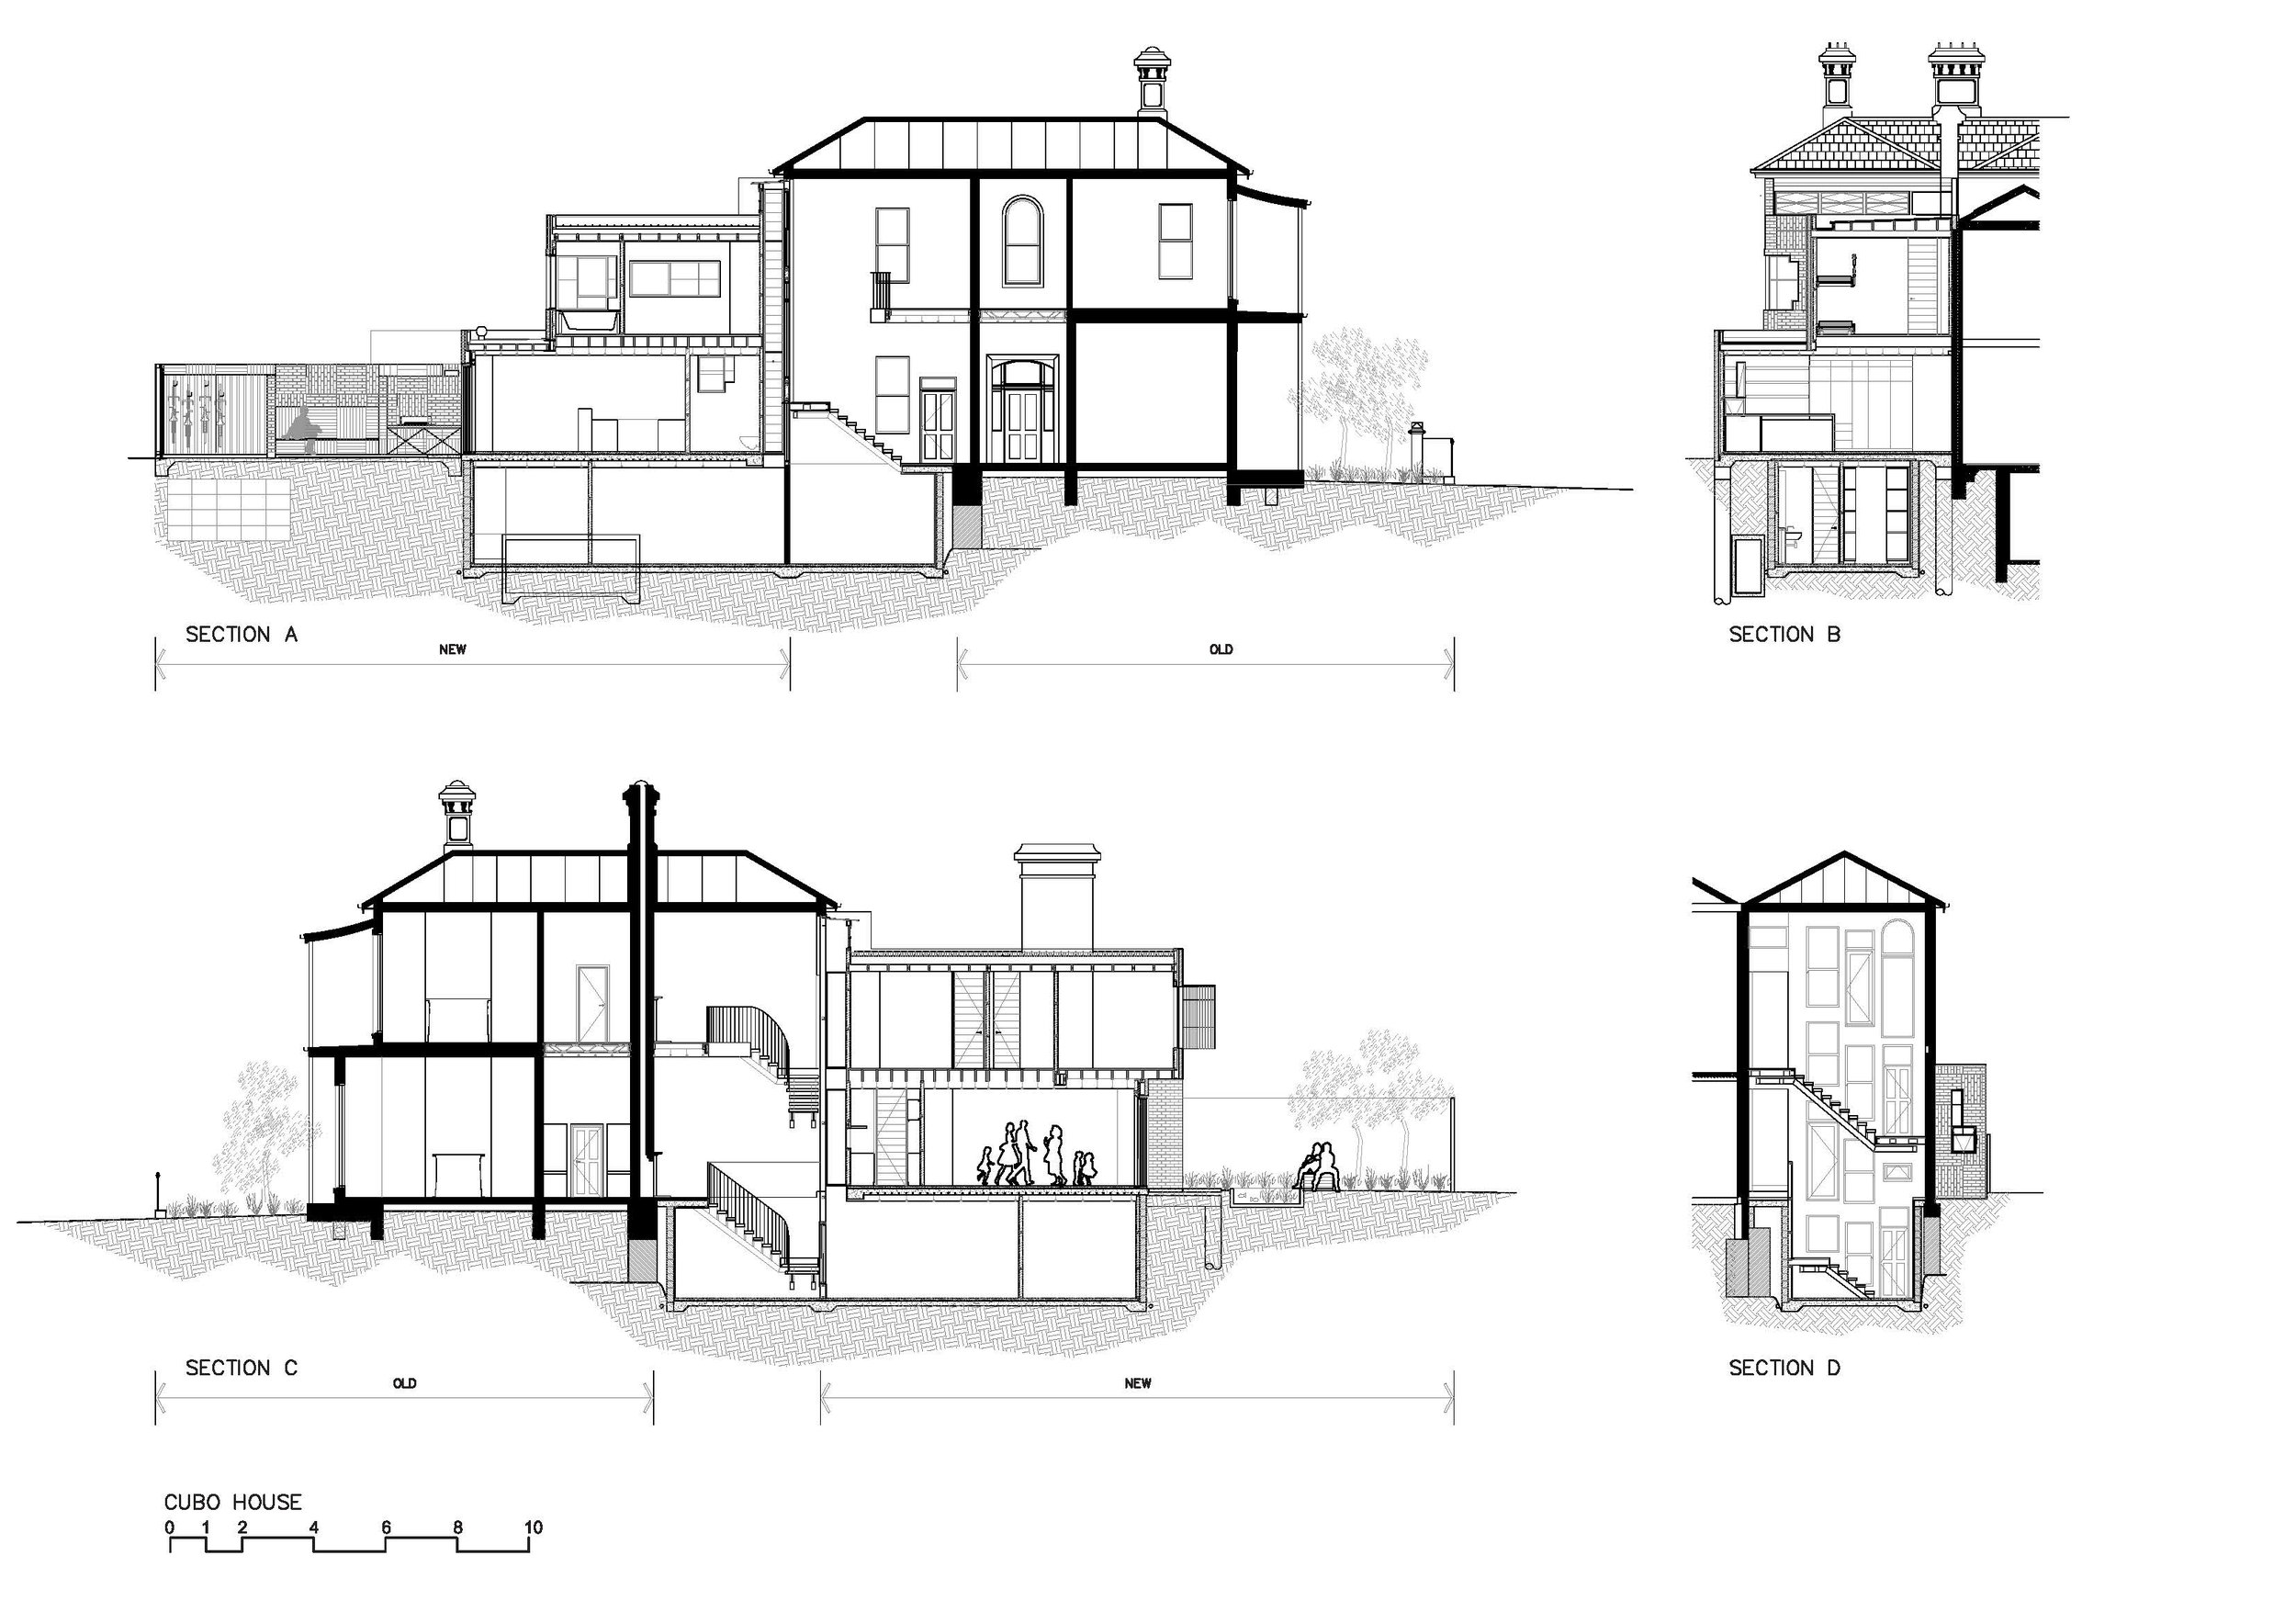 PHOOEY Architects Cubo House SECTIONS.jpg